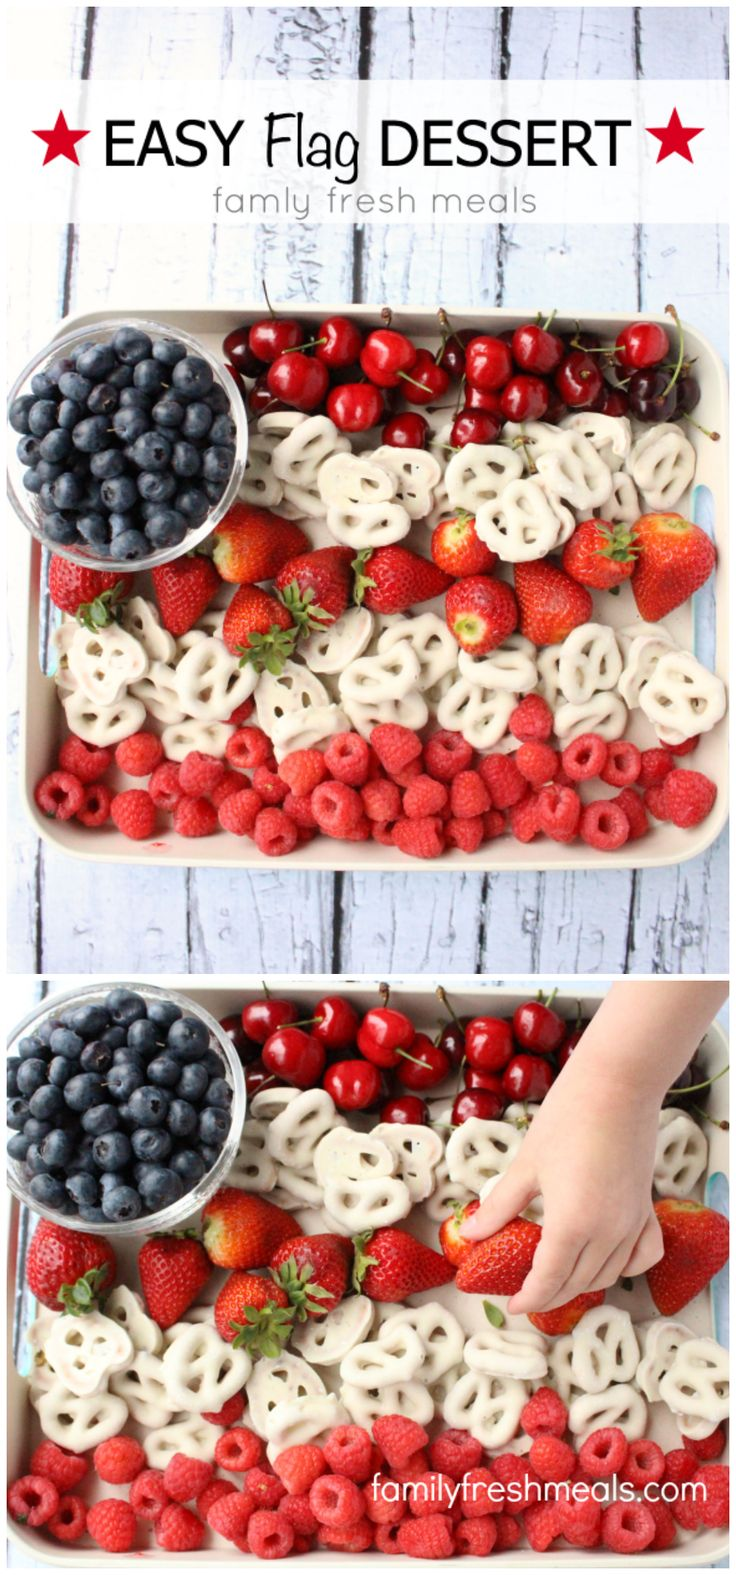 Enjoy a heart-healthy Flag Dessert fruit tray that you'll be proud to serve (especially to the little ones!) at your next July 4th party!